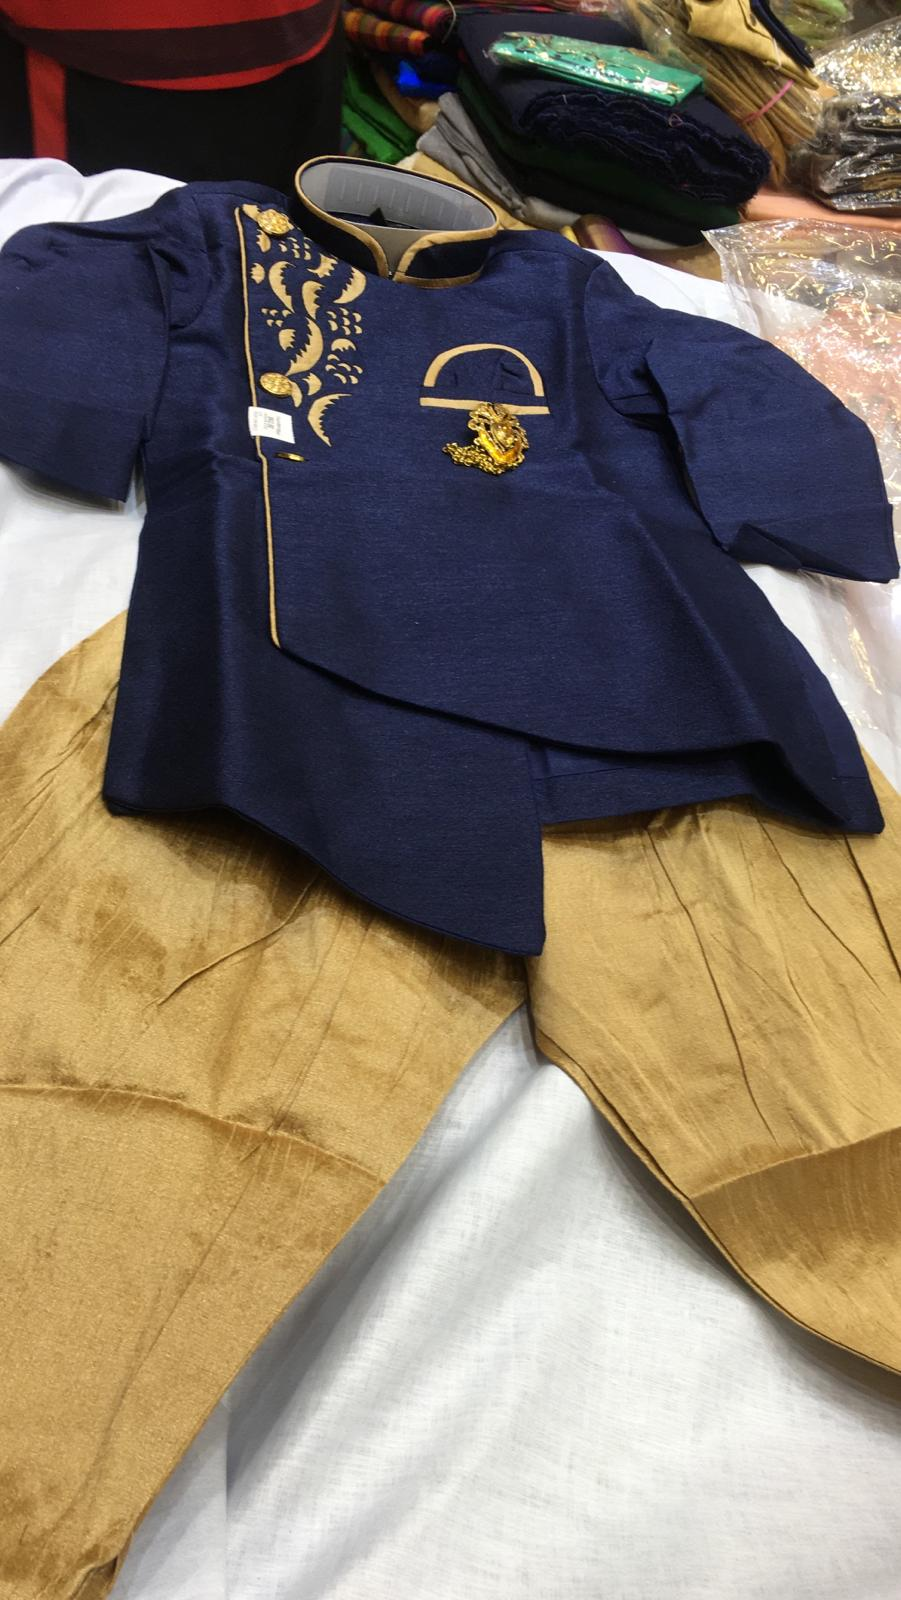 157939 $62.00 BOYS KURTA SET